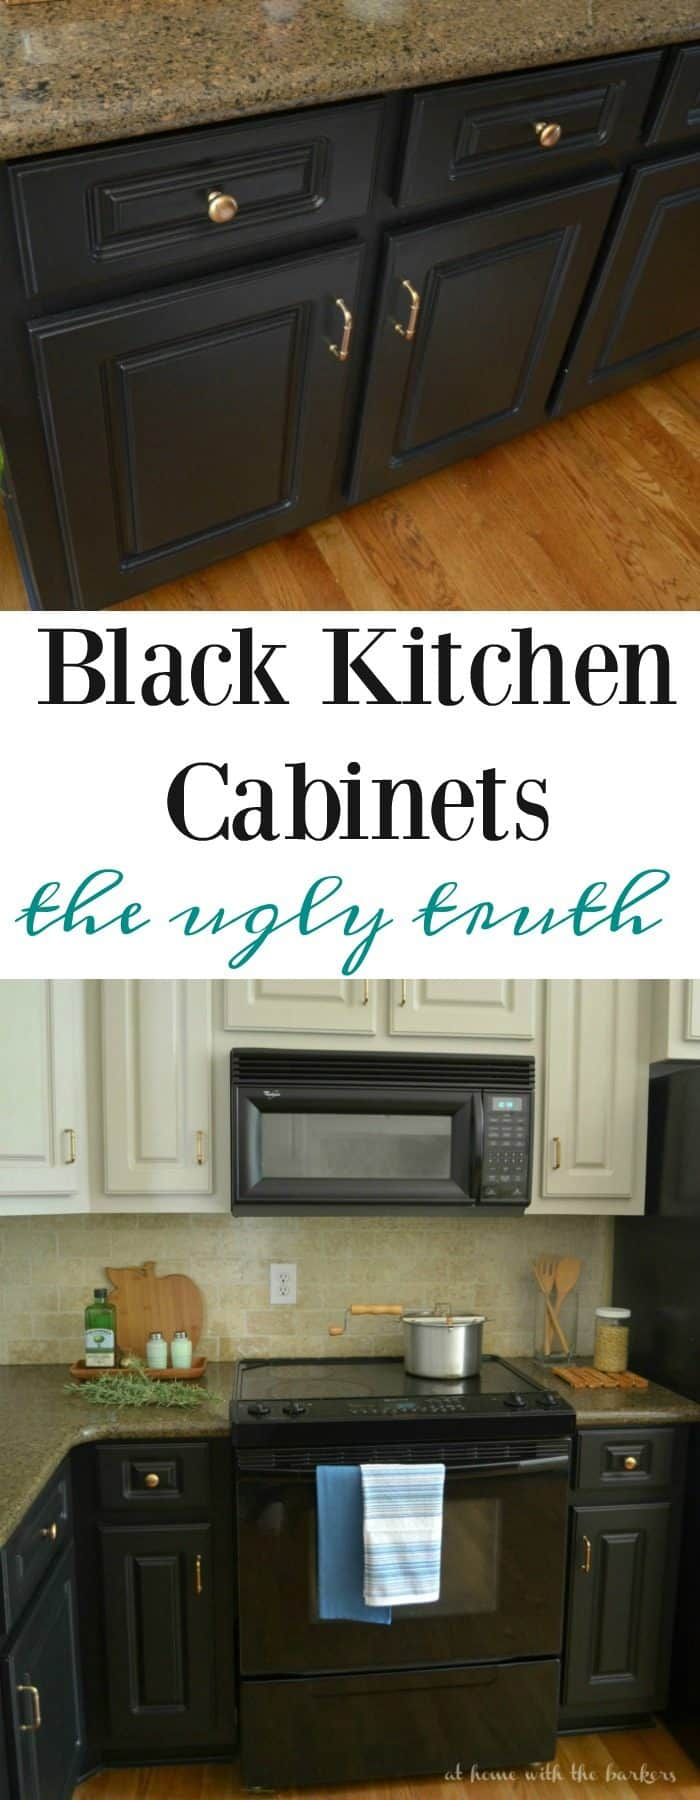 Black Kitchen Cabinets the ugly truth and why I wouldn't do it again.